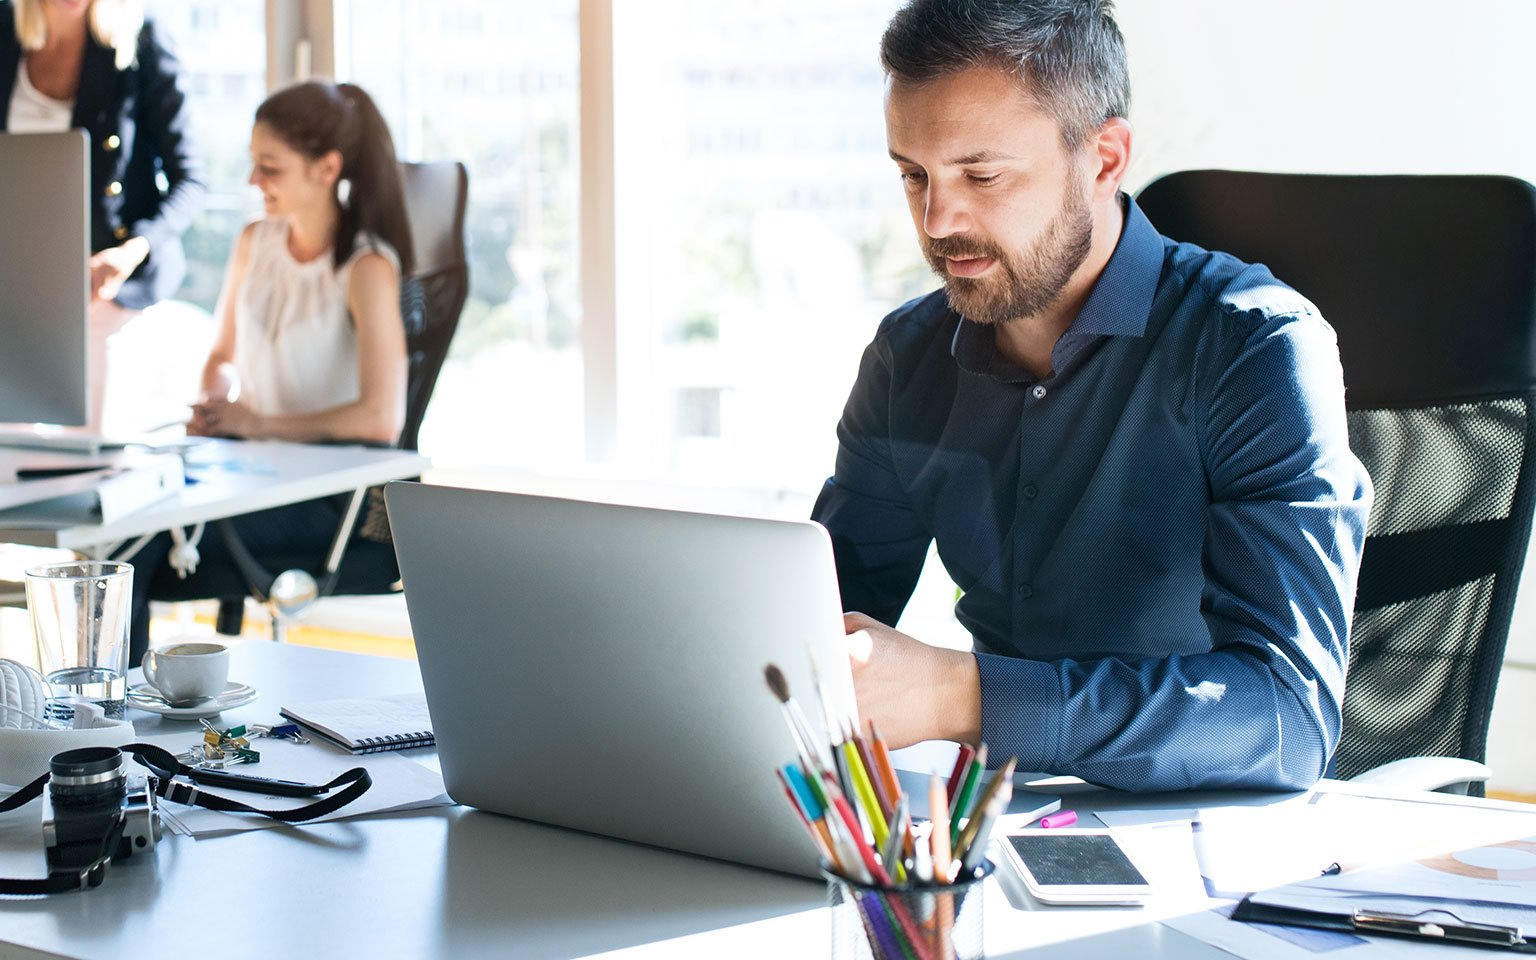 man working on laptop in office setting